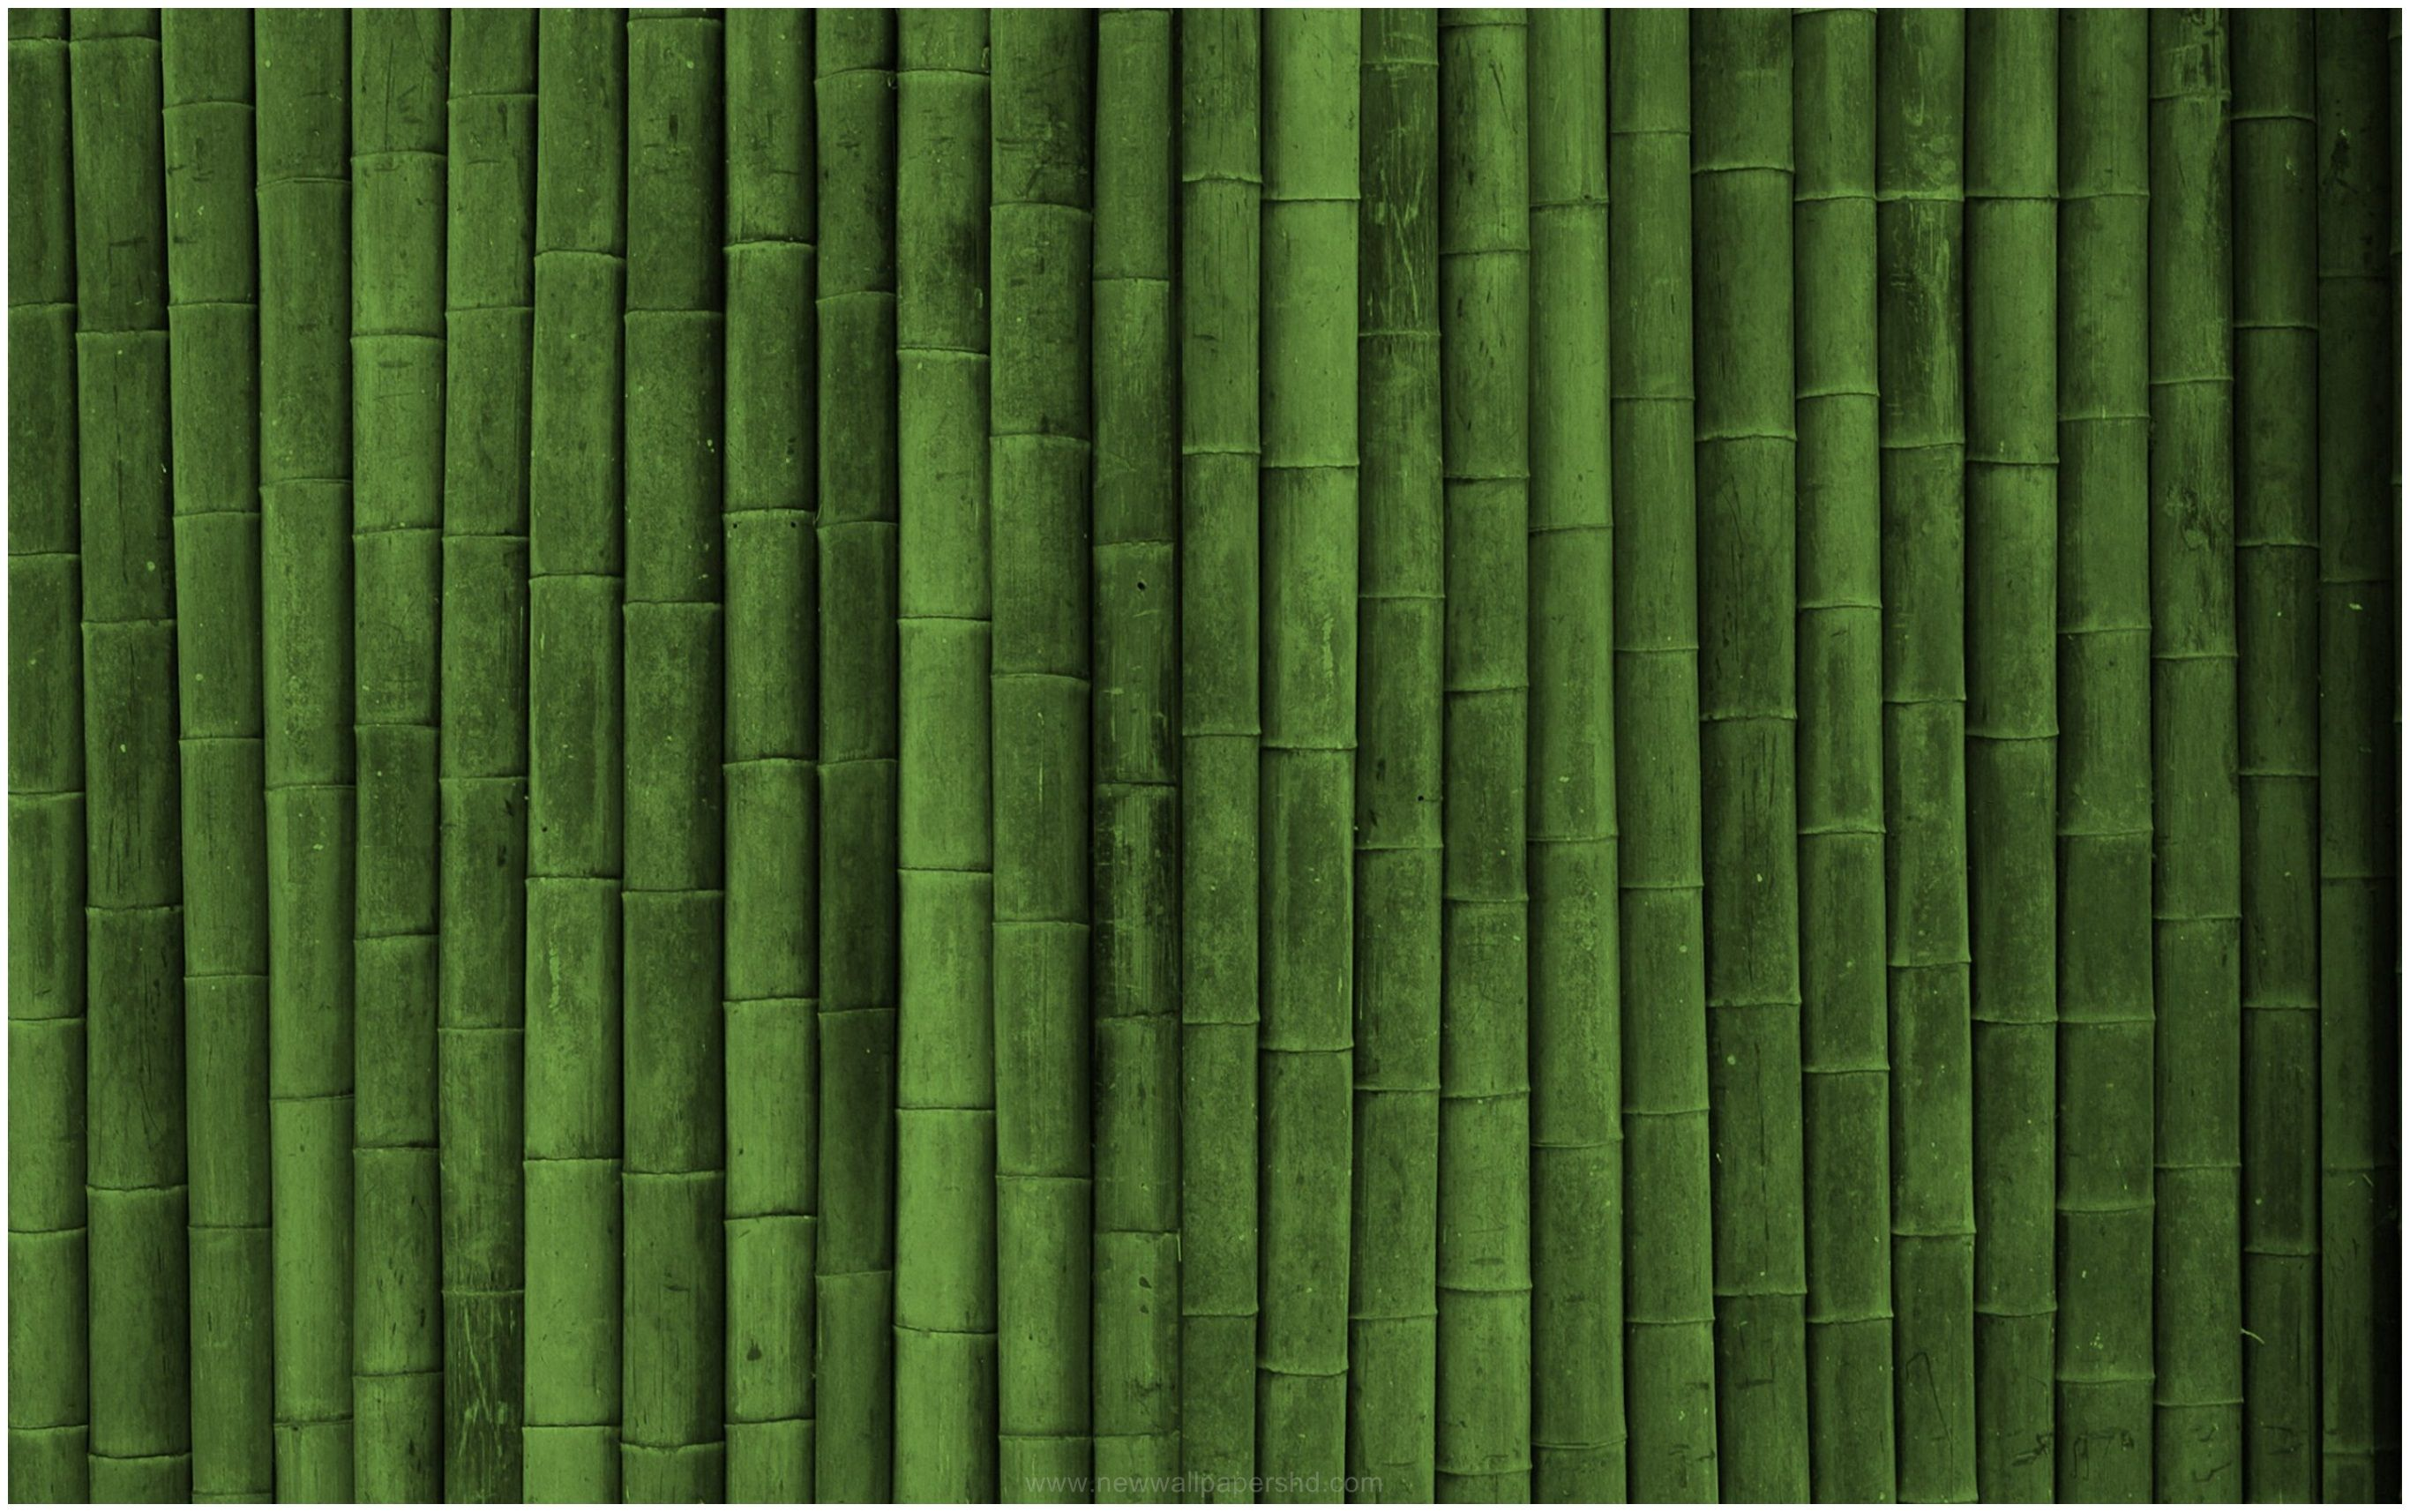 Bamboo Texture Wallpaper  980121 - Wallpaper Hd - Pinterest